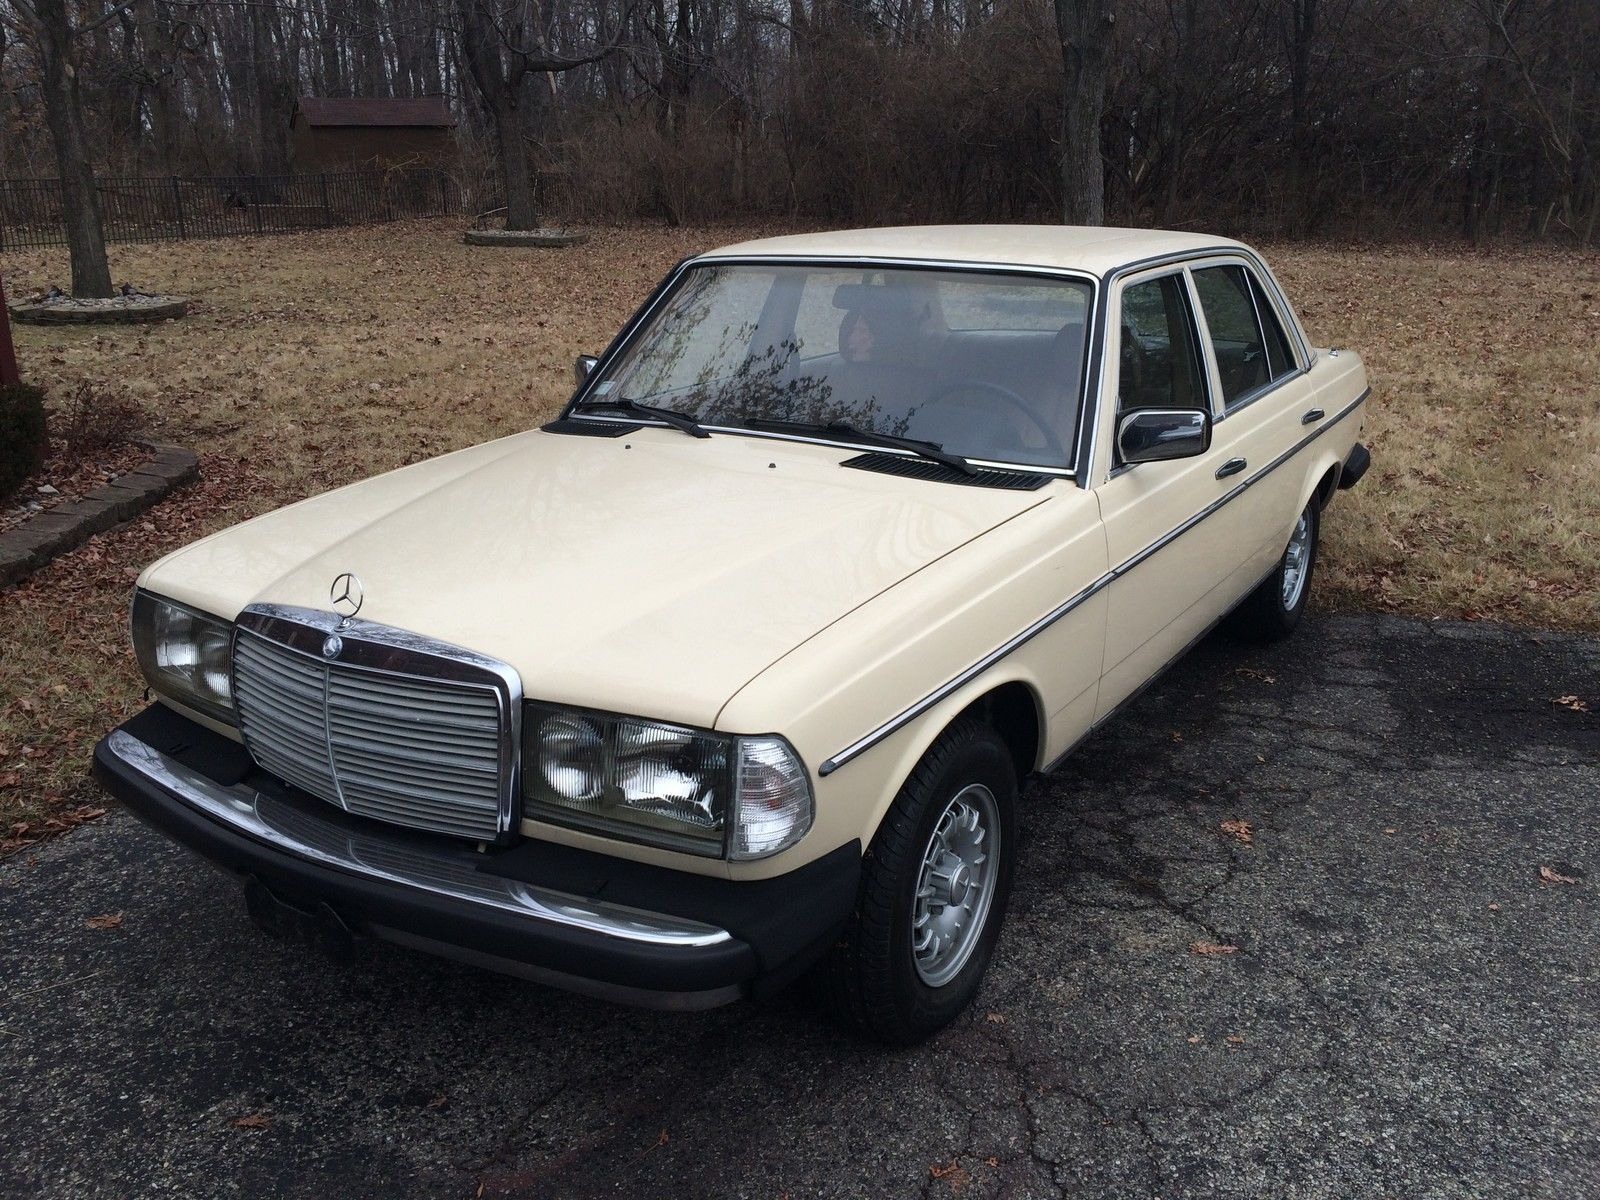 1983 mercedes benz 300 td turbo diesel no reserve for Mercedes benz 300 diesel